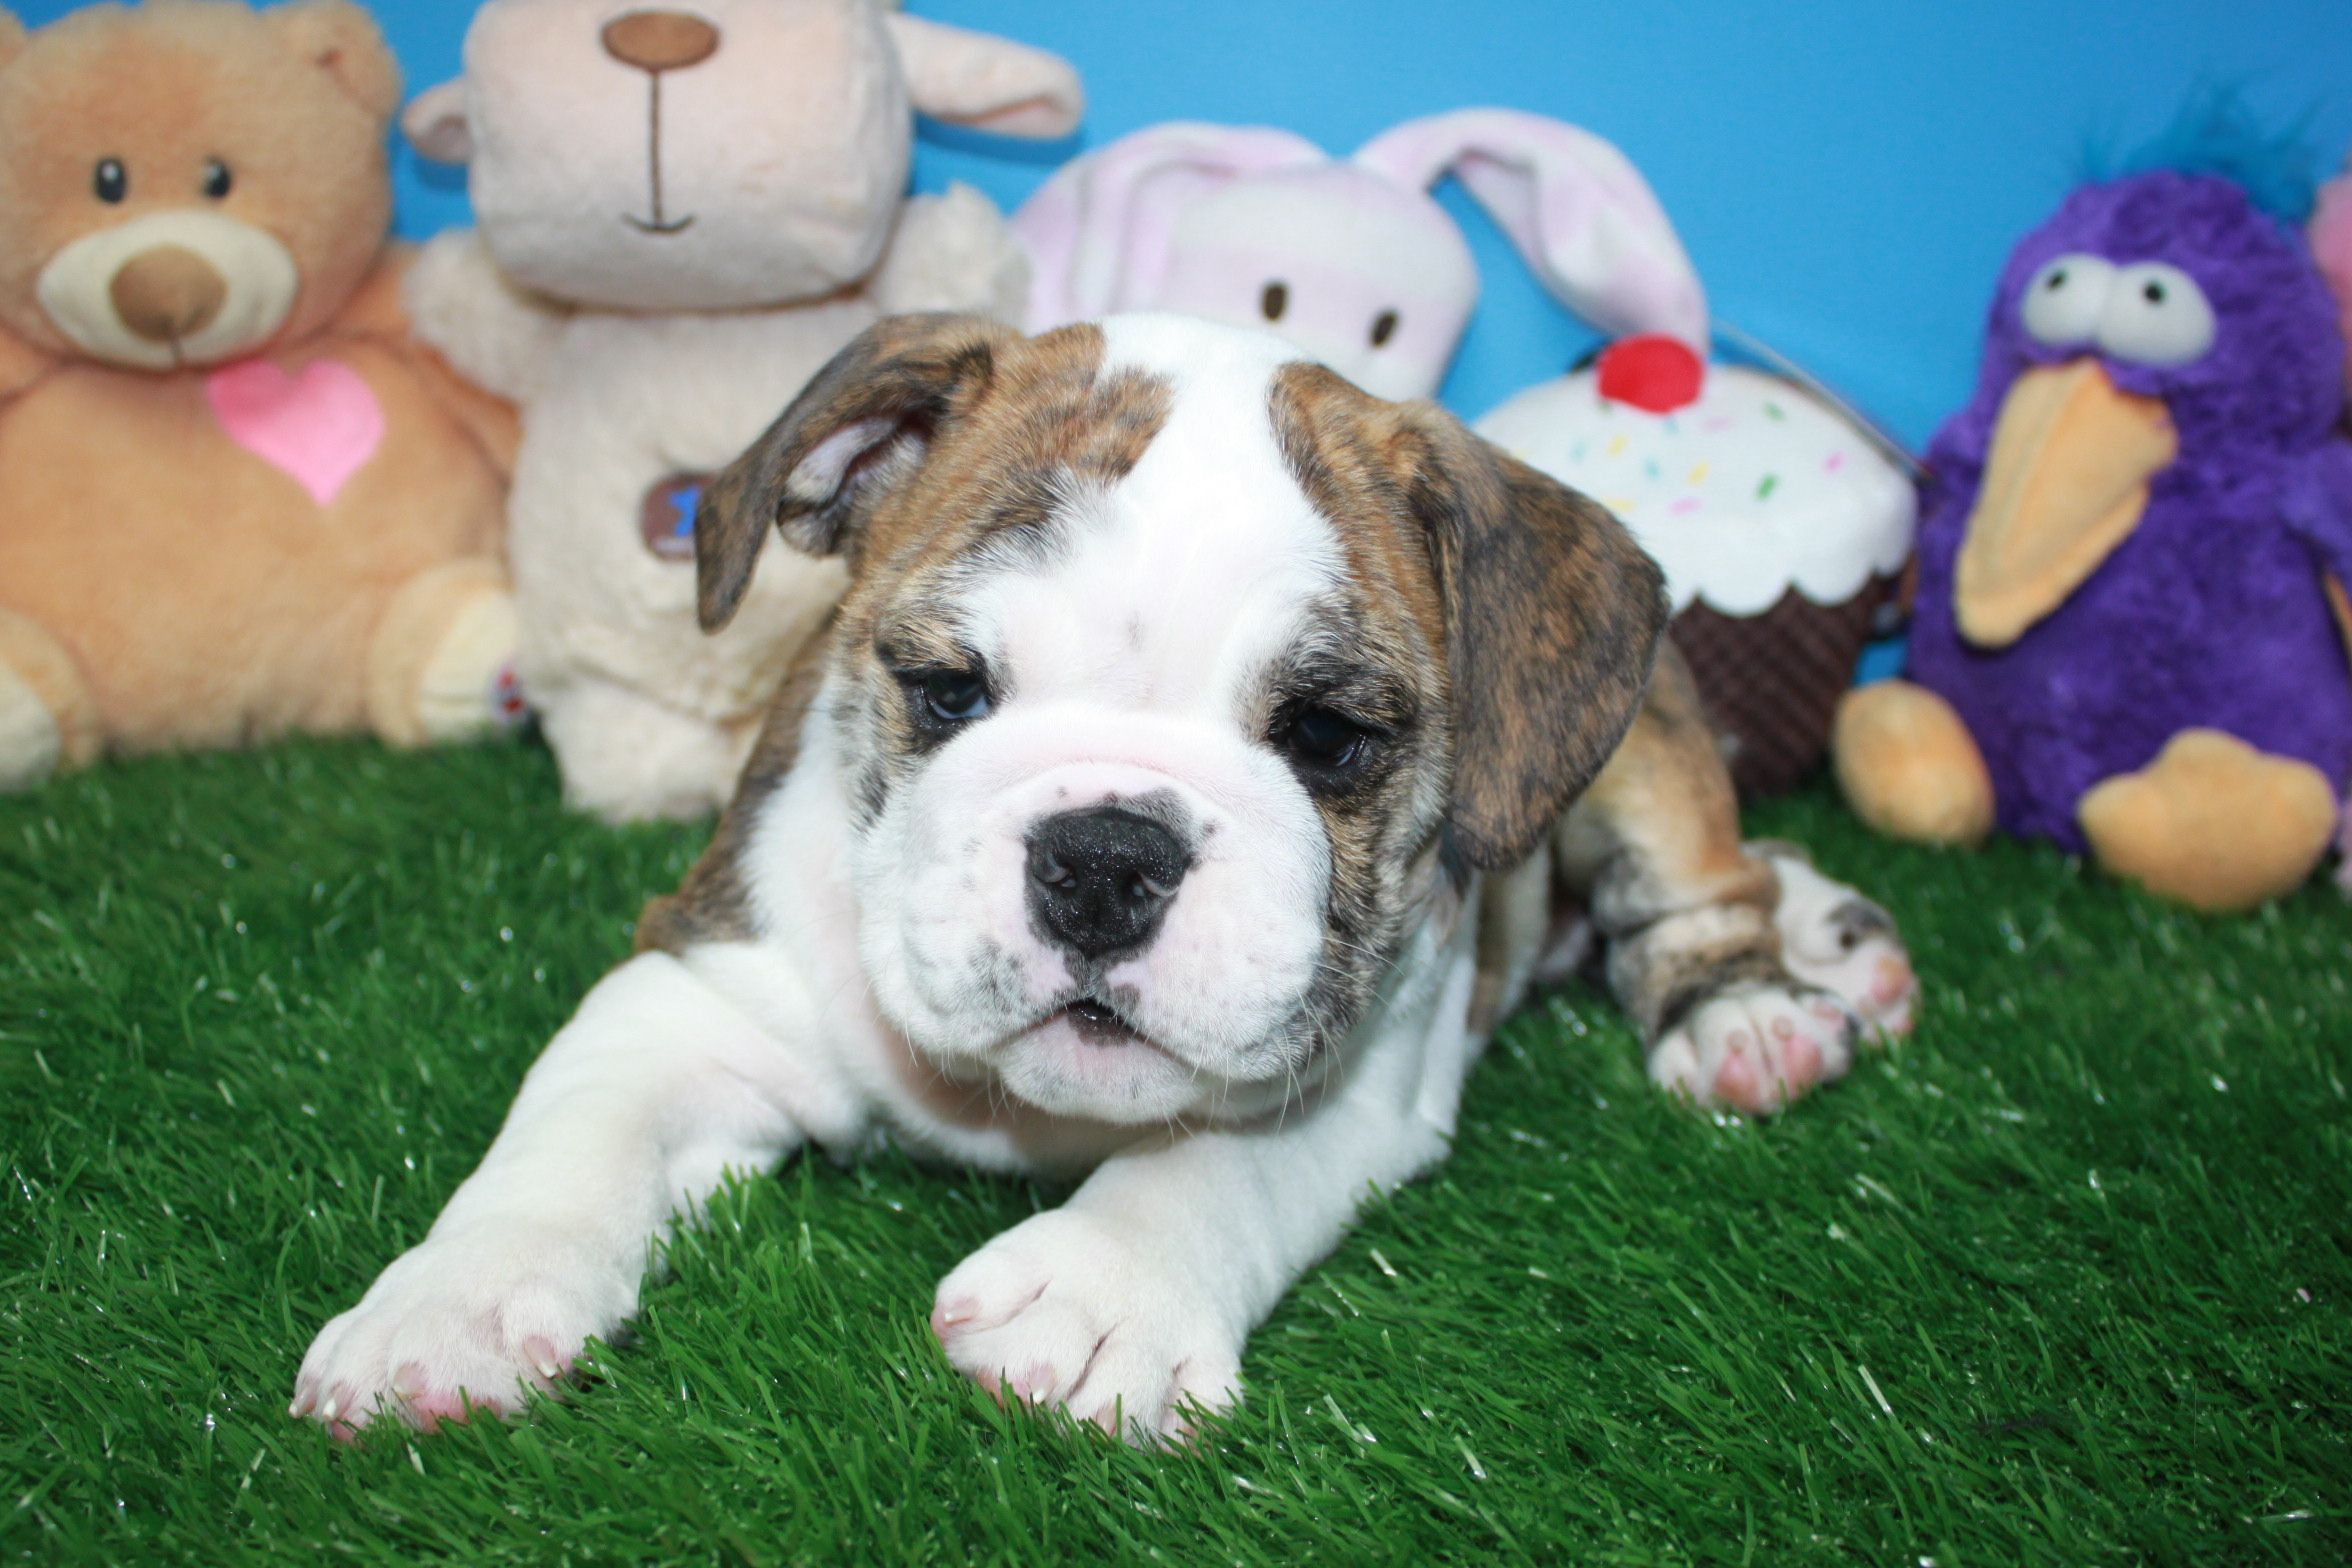 Bulldog American Bulldog French Bulldog Bulldog Puppies Bulldog